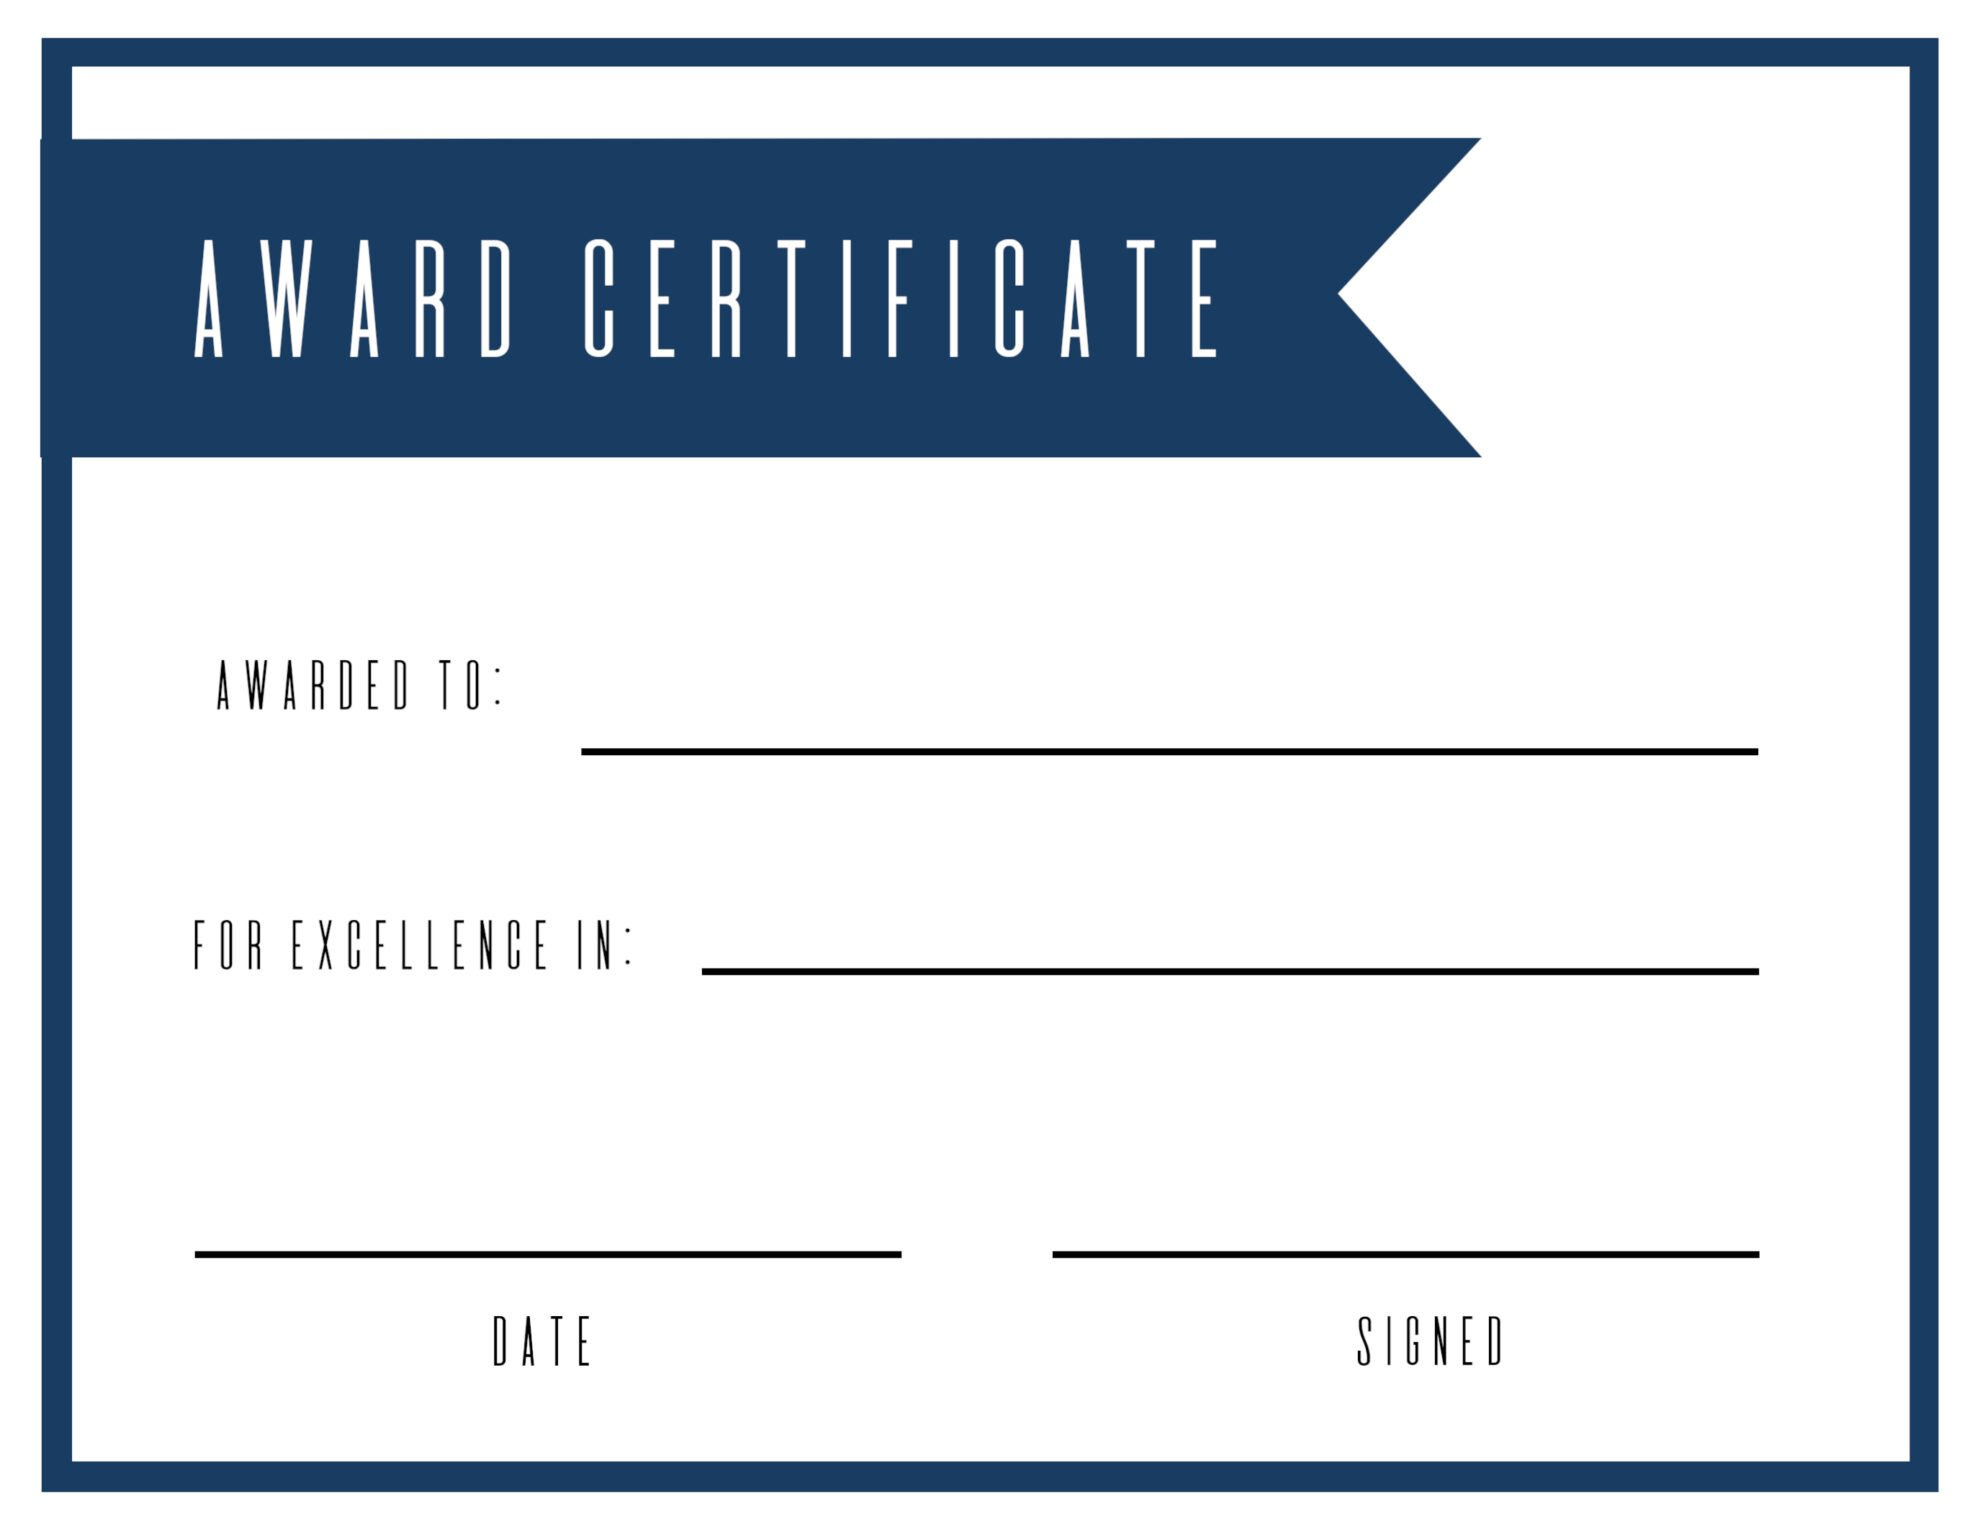 Award Certificate Template Free Free Printable Award Certificate Template Paper Trail Design